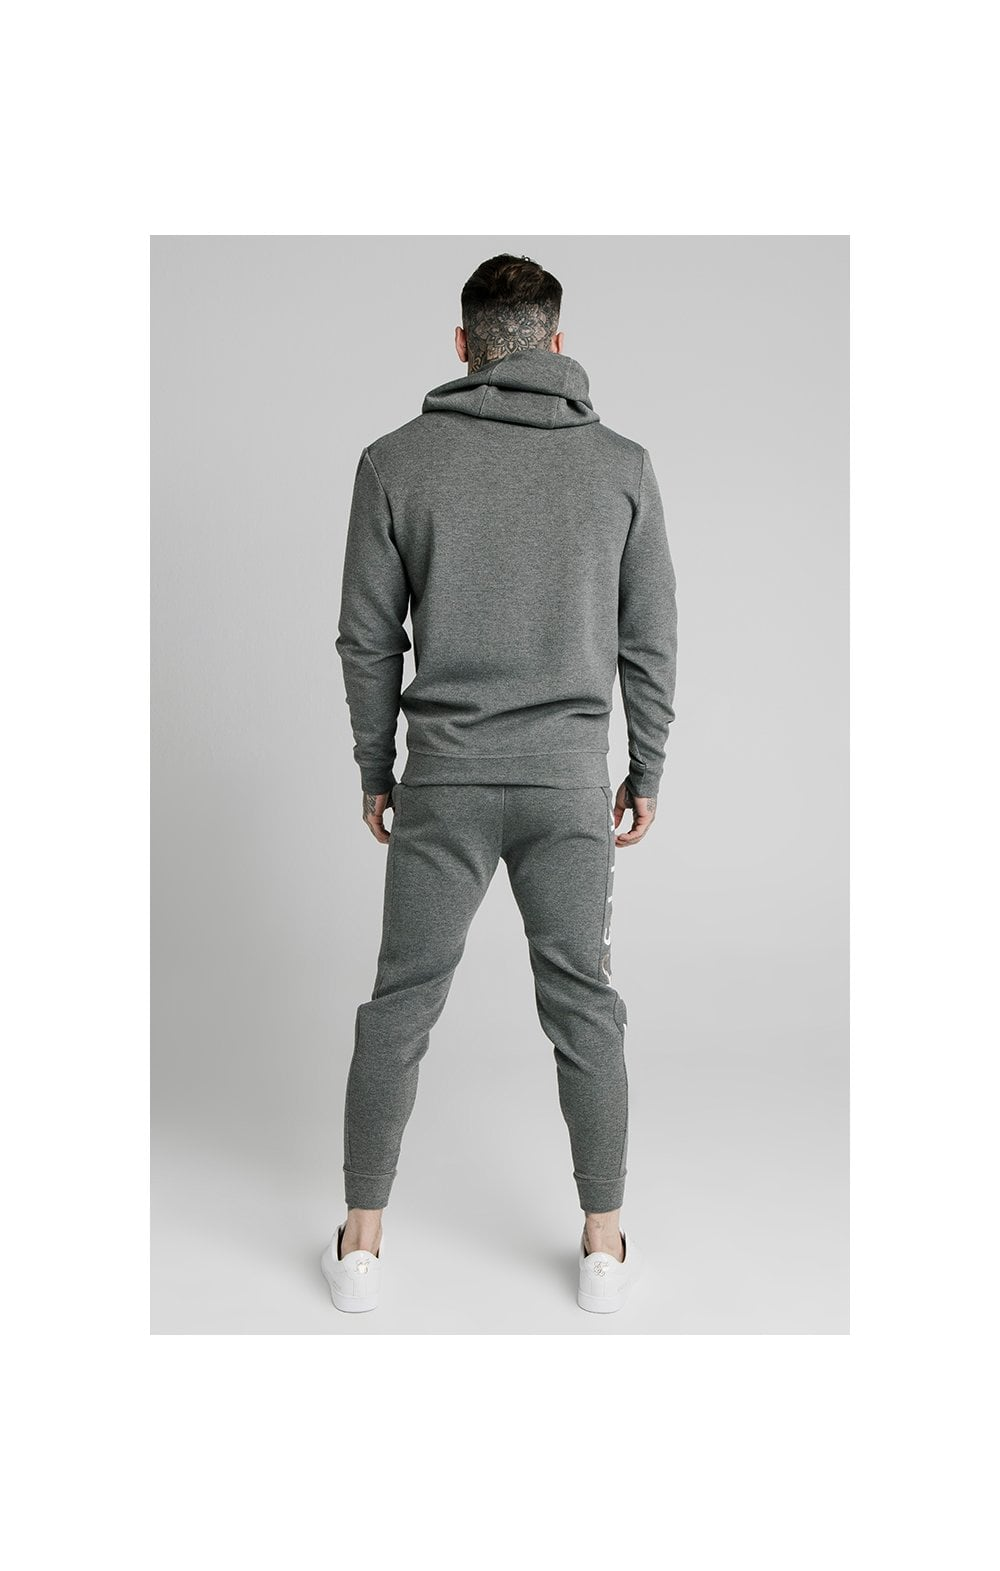 Load image into Gallery viewer, SikSilk Signature Overhead Hoodie - Grey (4)